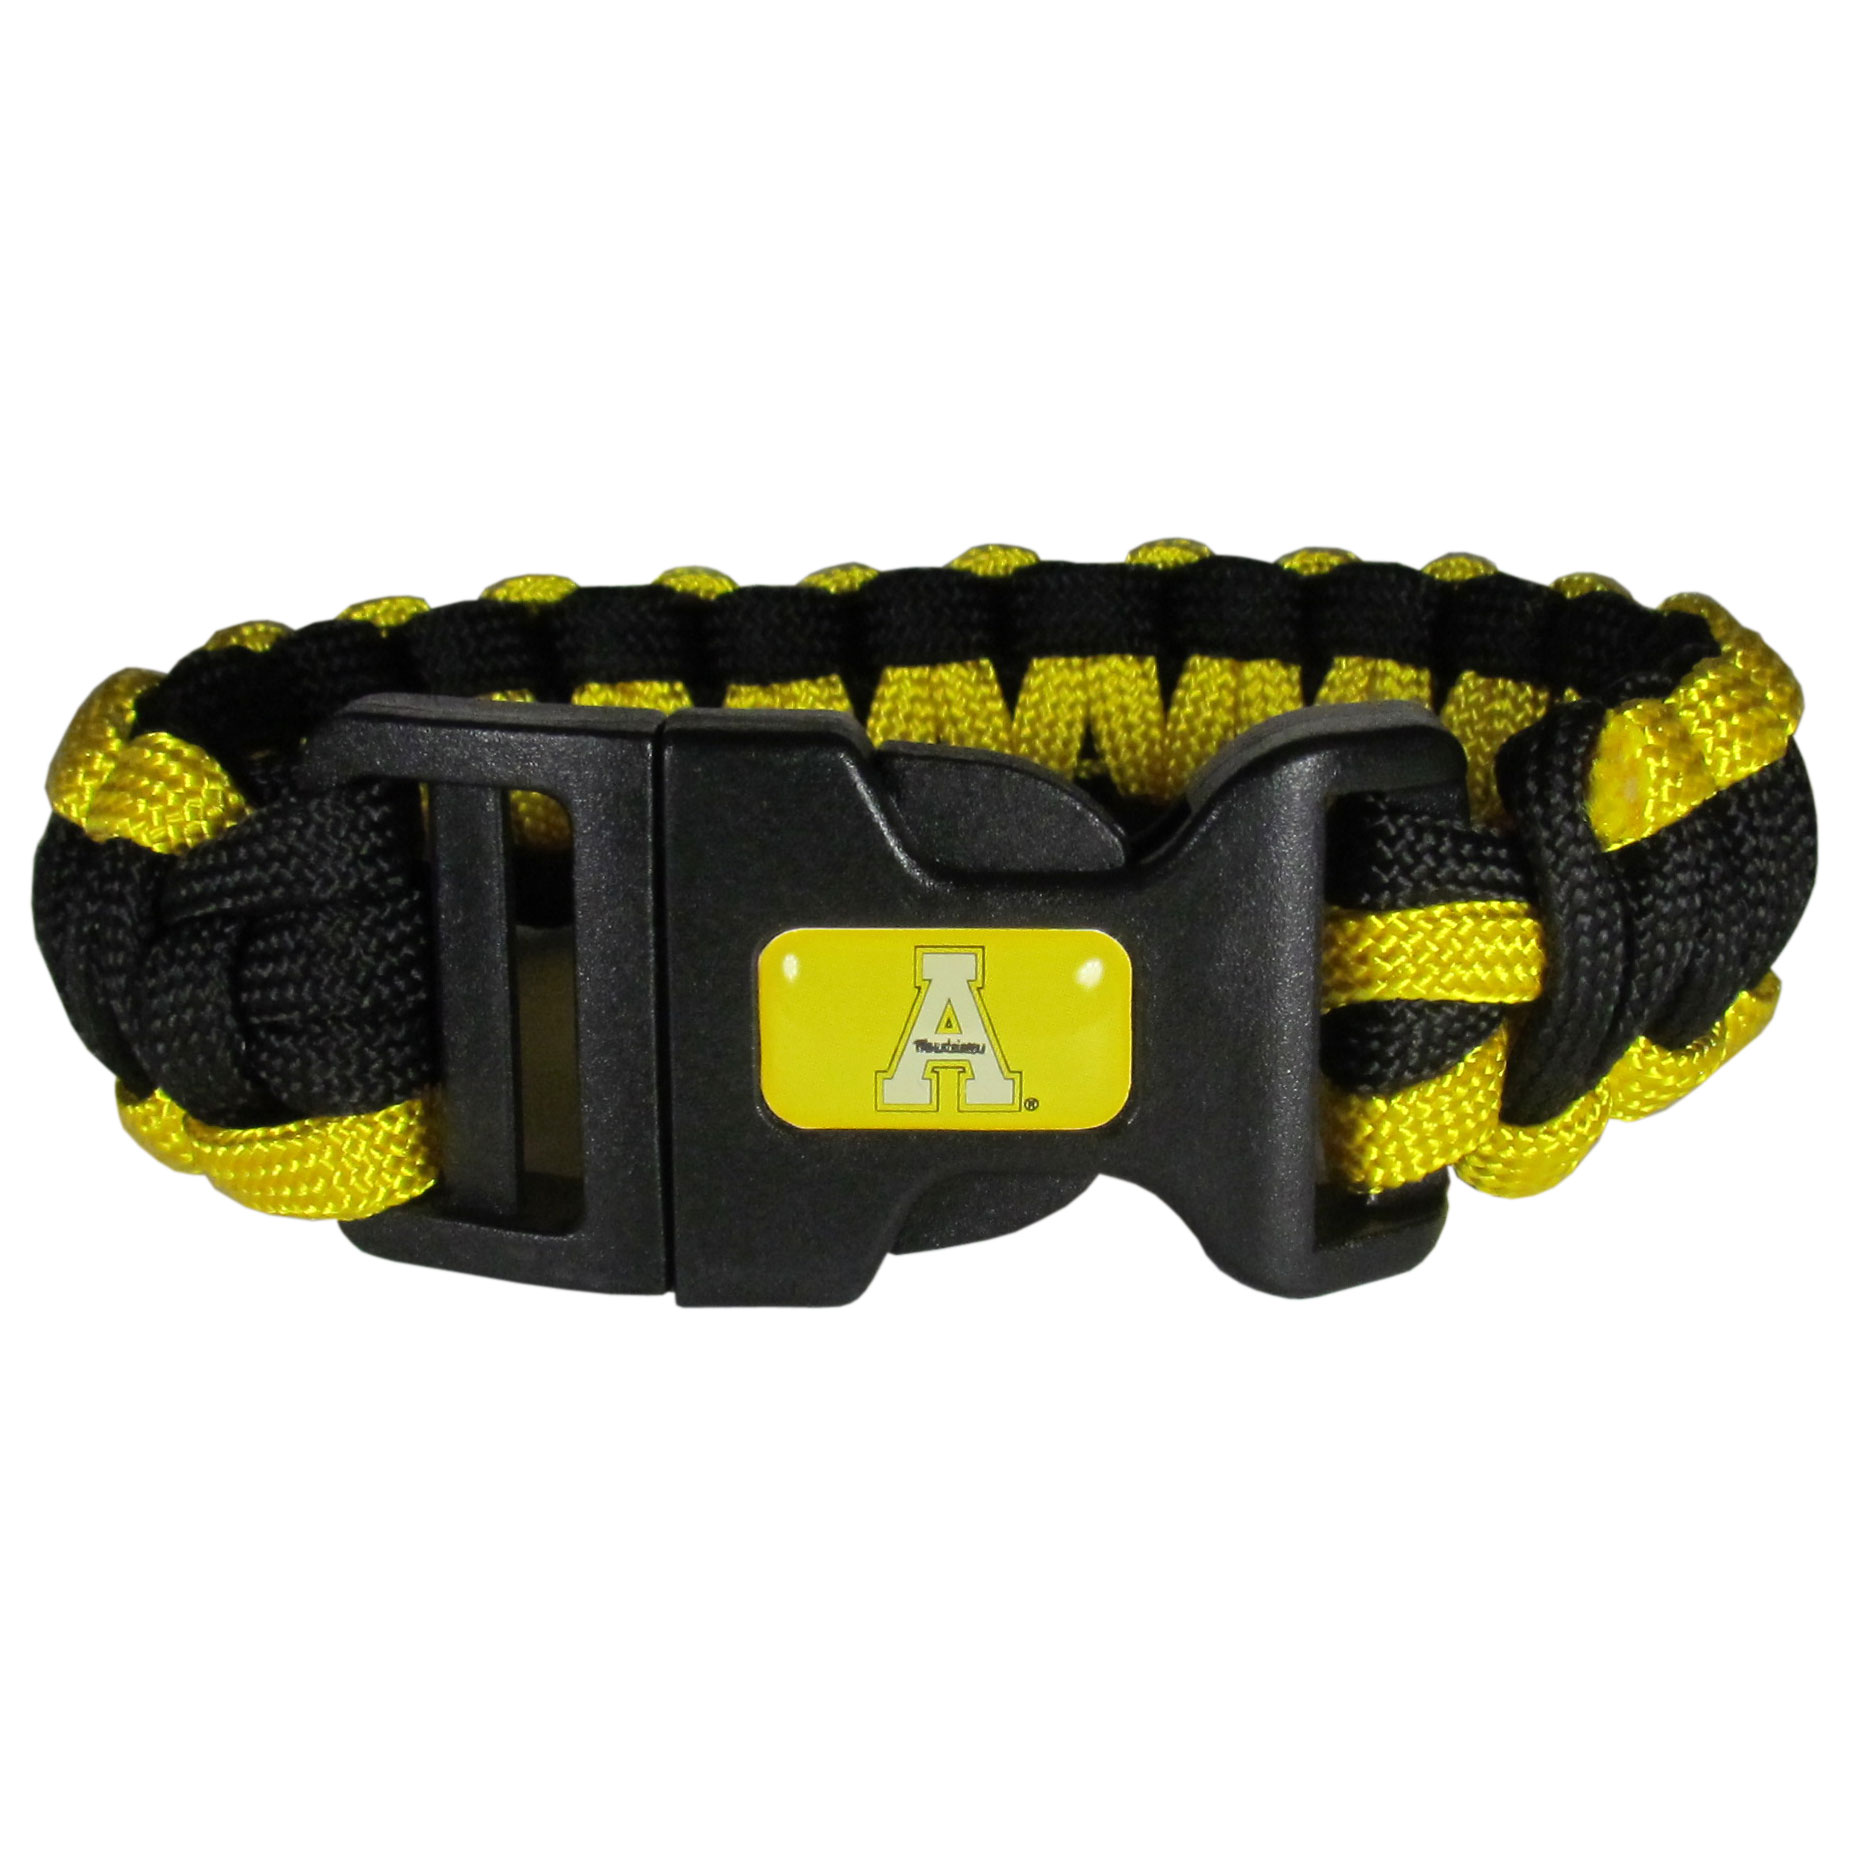 Appalachian St. Mountaineers Survivor Bracelet - Our functional and fashionable Appalachian St. Mountaineers survivor bracelets contain 2 individual 300lb test paracord rated cords that are each 5 feet long. The team colored cords can be pulled apart to be used in any number of emergencies and look great while worn. The bracelet features a team emblem on the clasp.